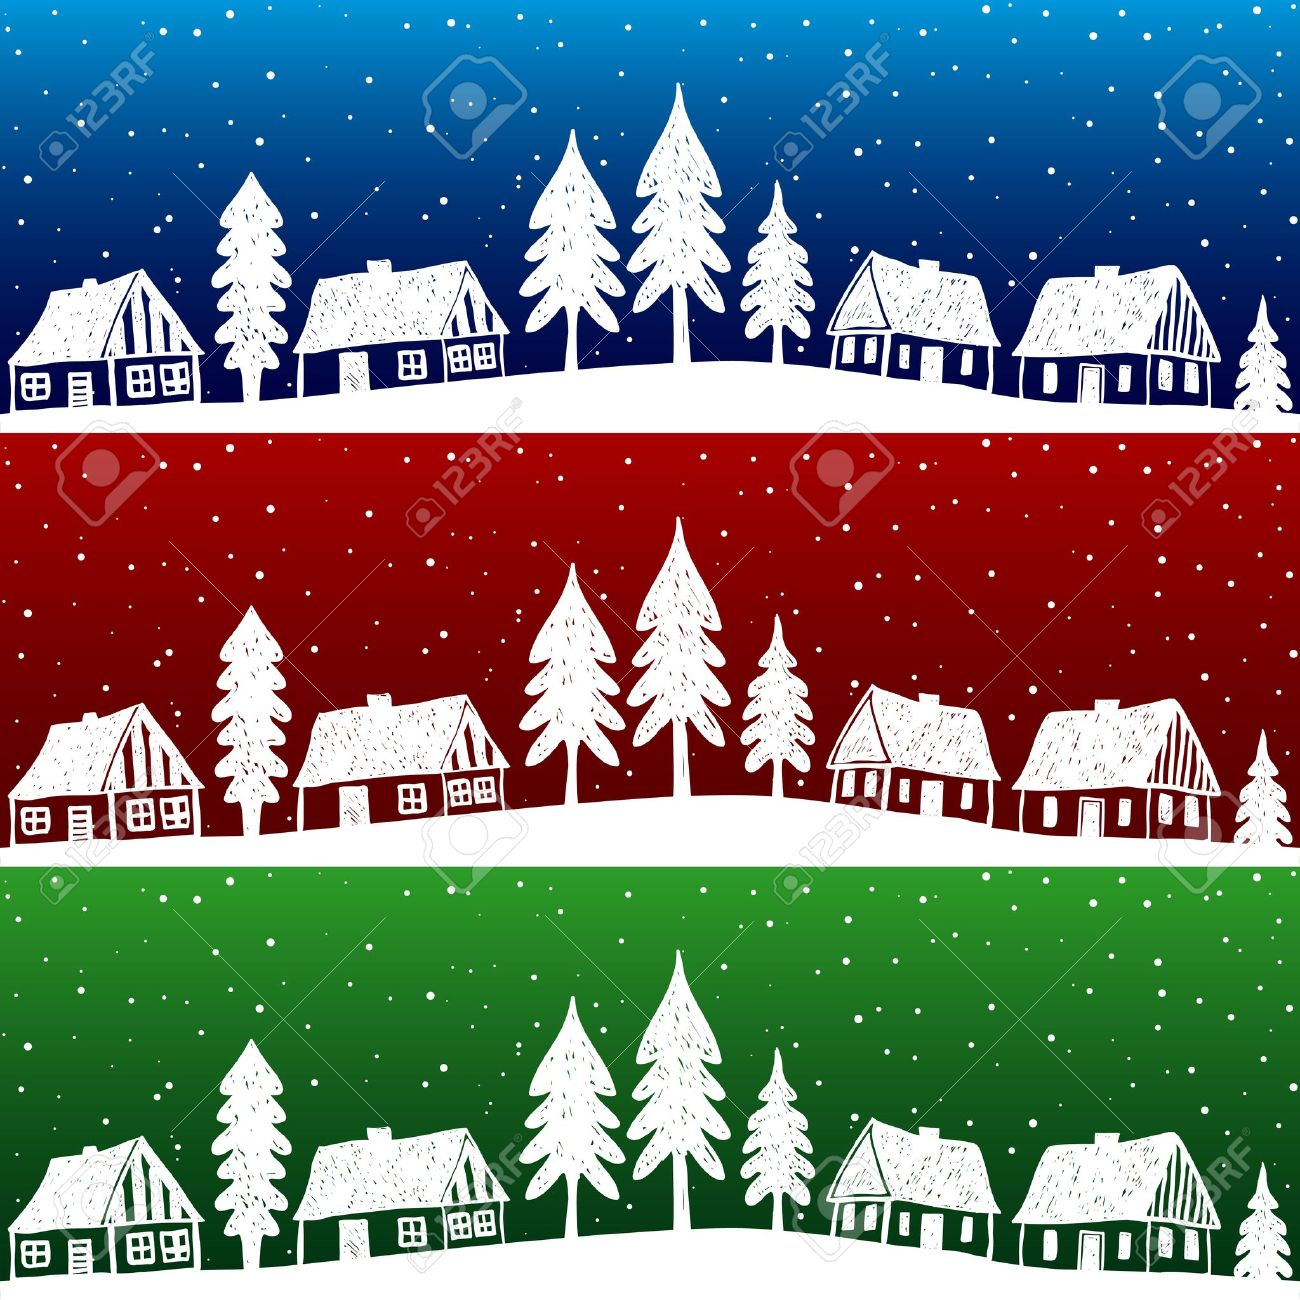 1,080 Xmas Town City Village Cliparts, Stock Vector And Royalty.